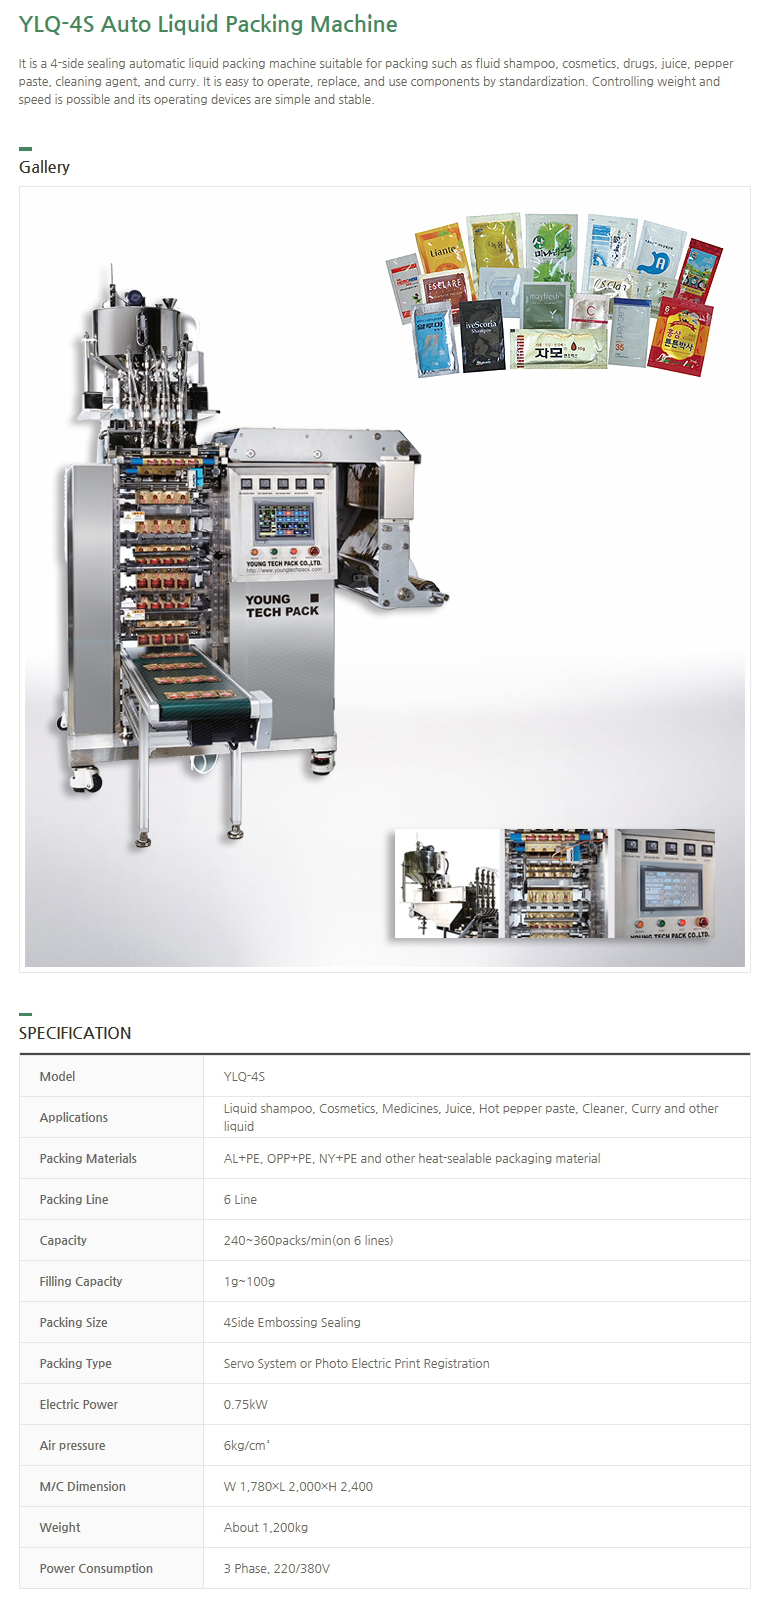 YOUNG TECH PACK Auto Liquid Packing Machine YLQ-4S